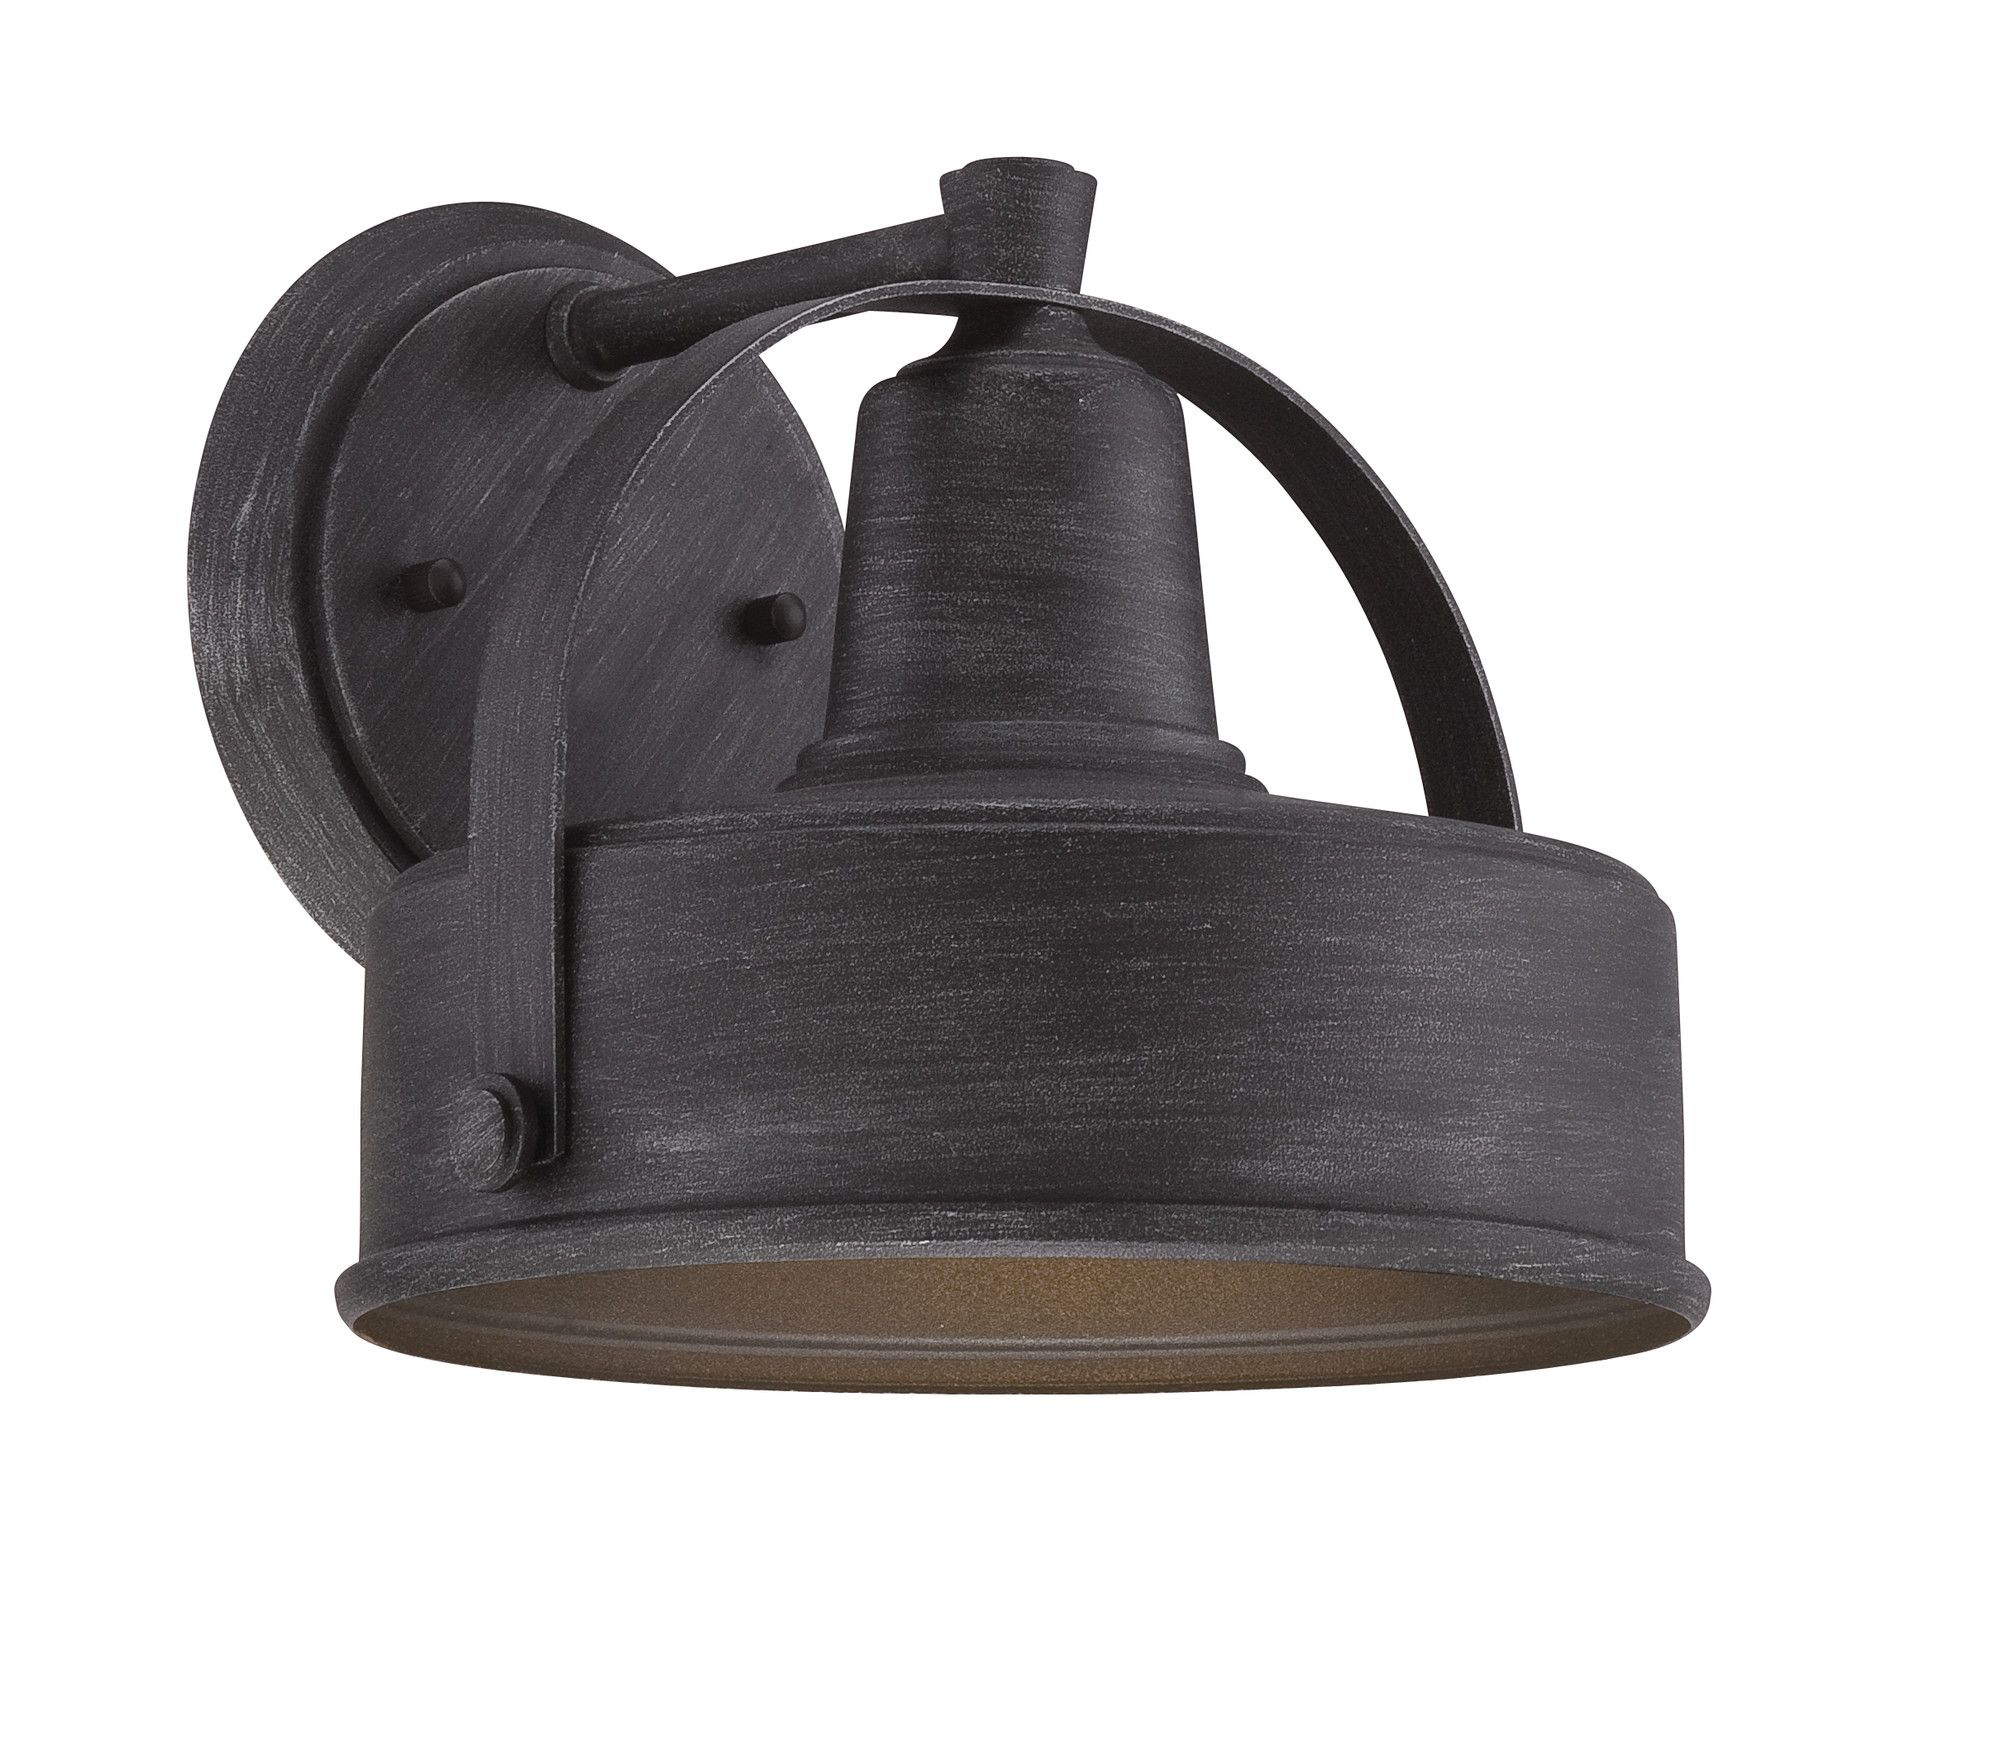 Portlandds light wall lantern wayfair lighting ue pinterest